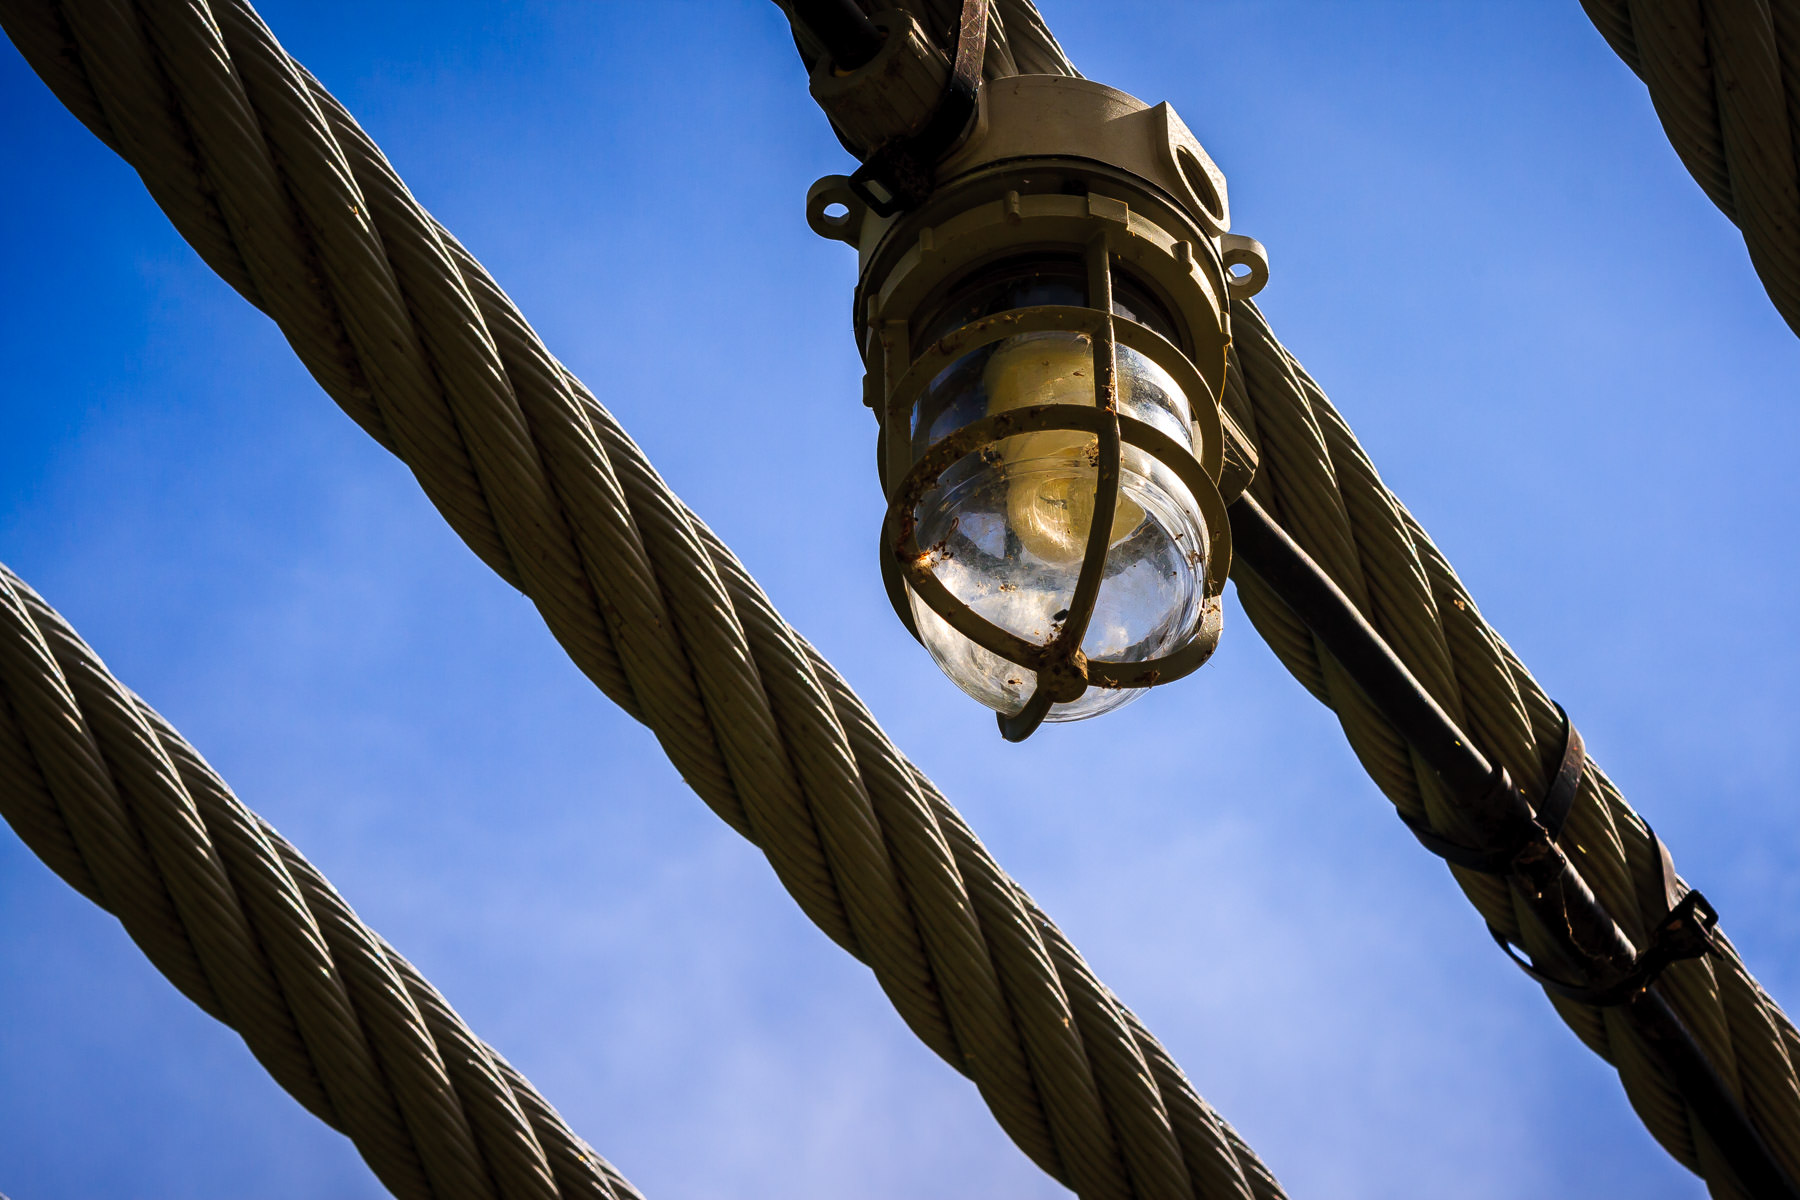 A light on a cable at the Waco Suspension Bridge, Waco, Texas.